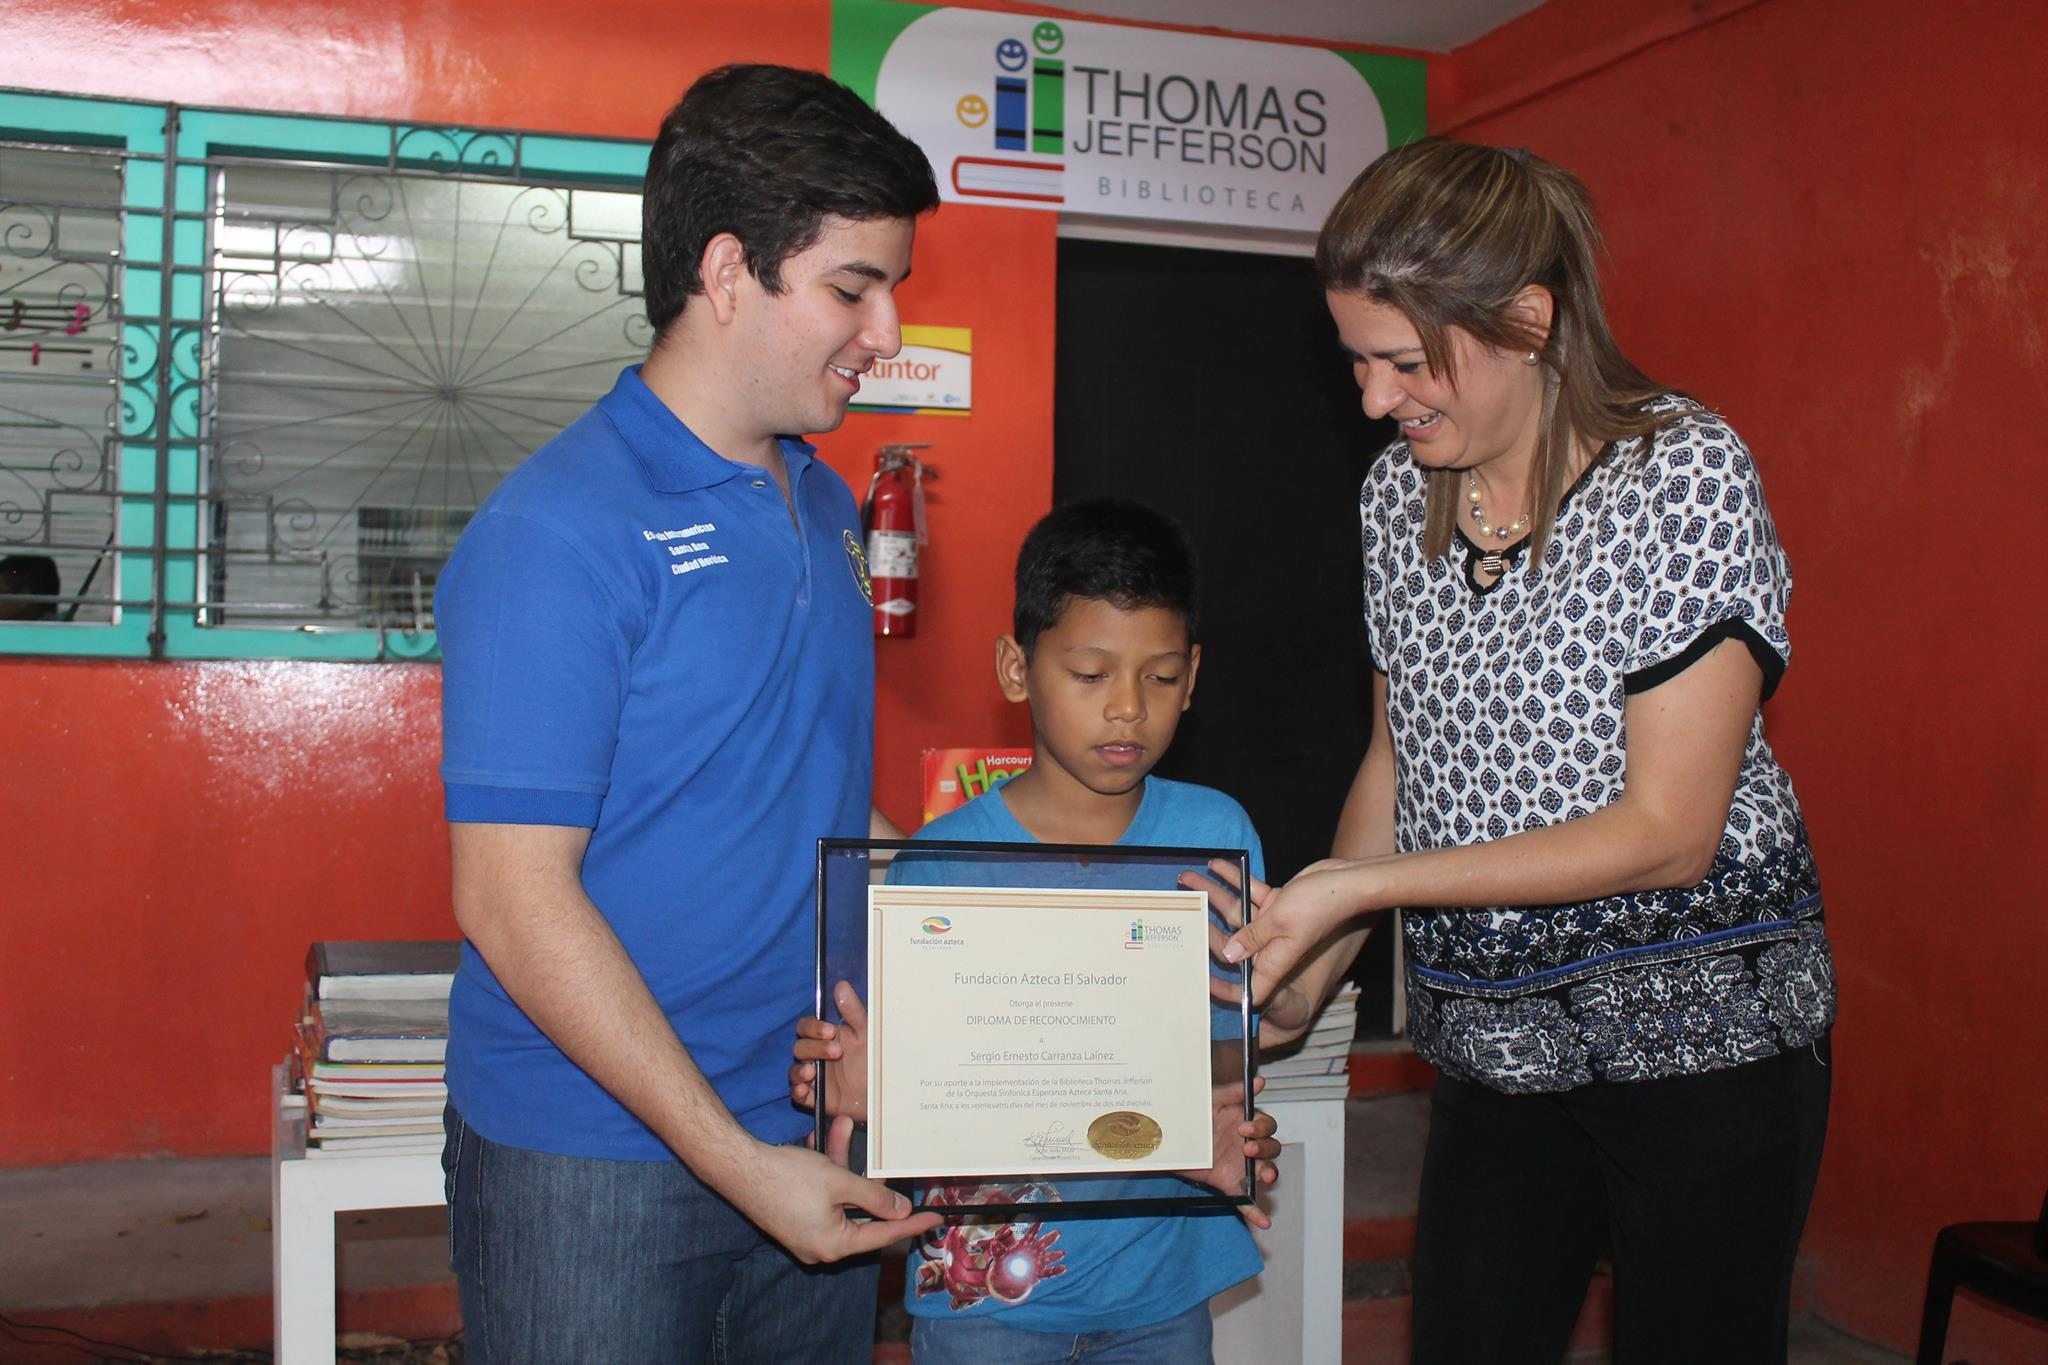 Club Interact entregó 750 ejemplares para biblioteca Thomas Jefferson en Santa Ana